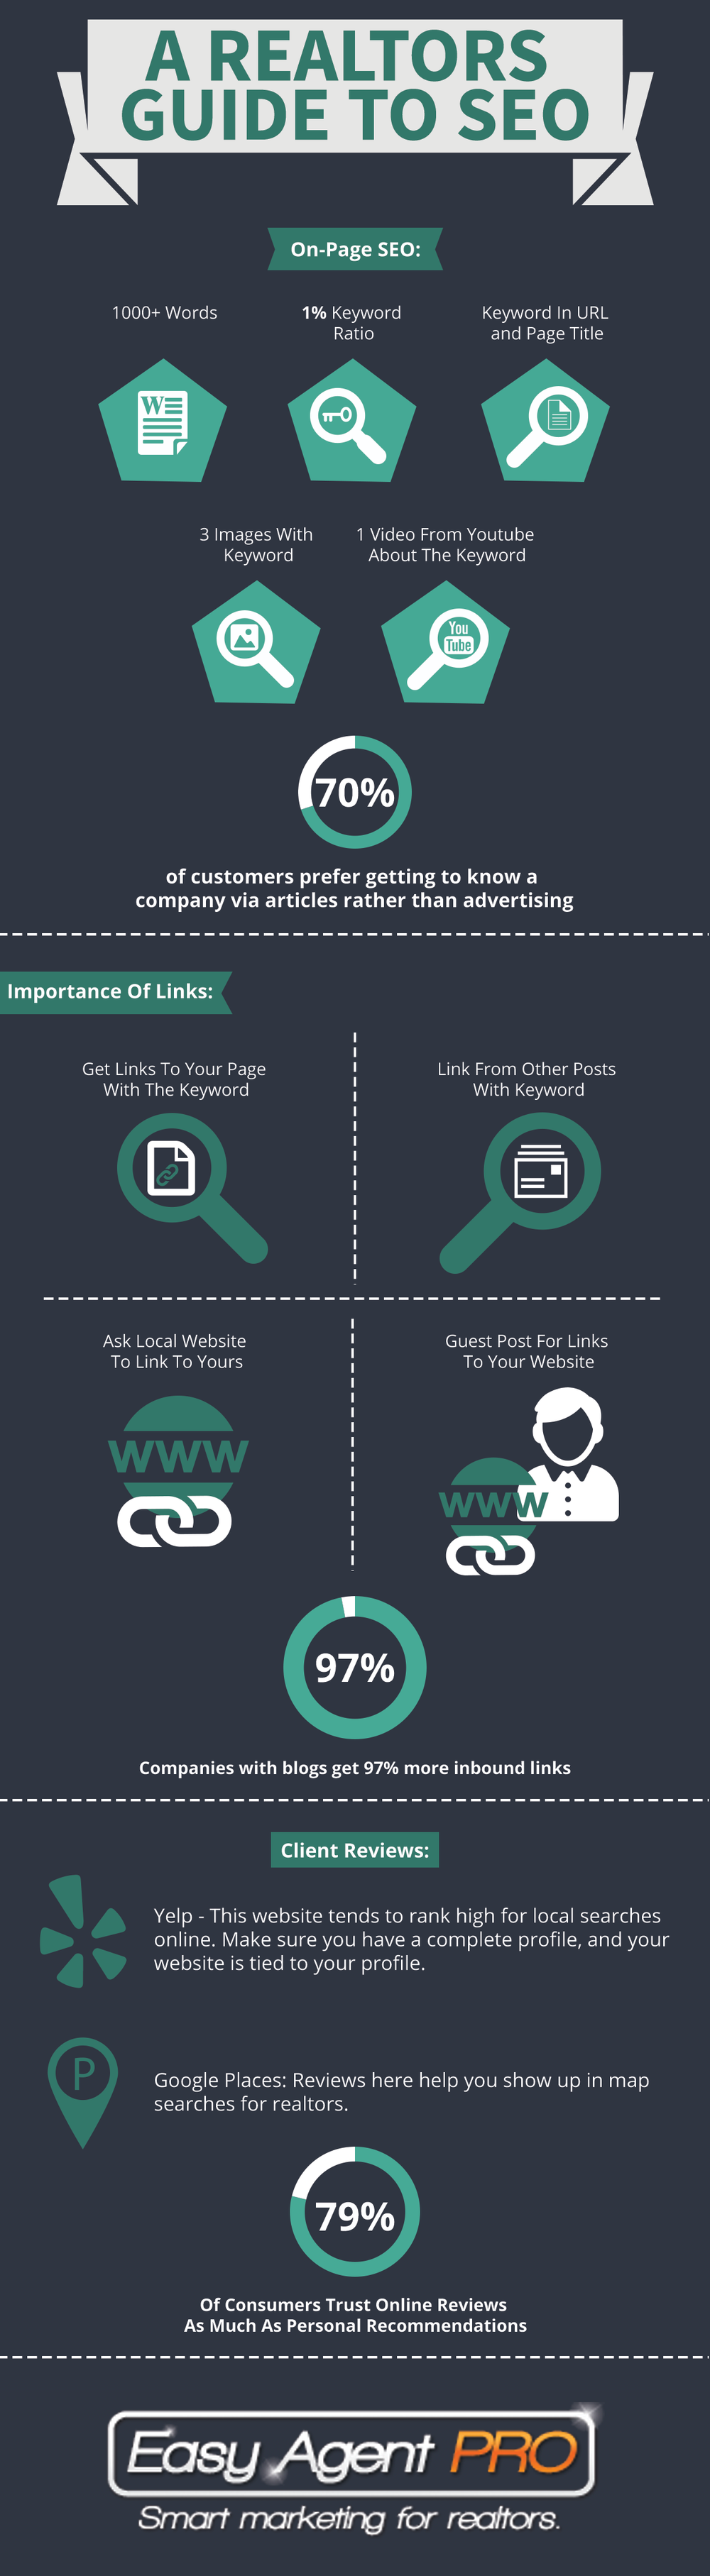 infographic a realtor s guide to seo resaas blog